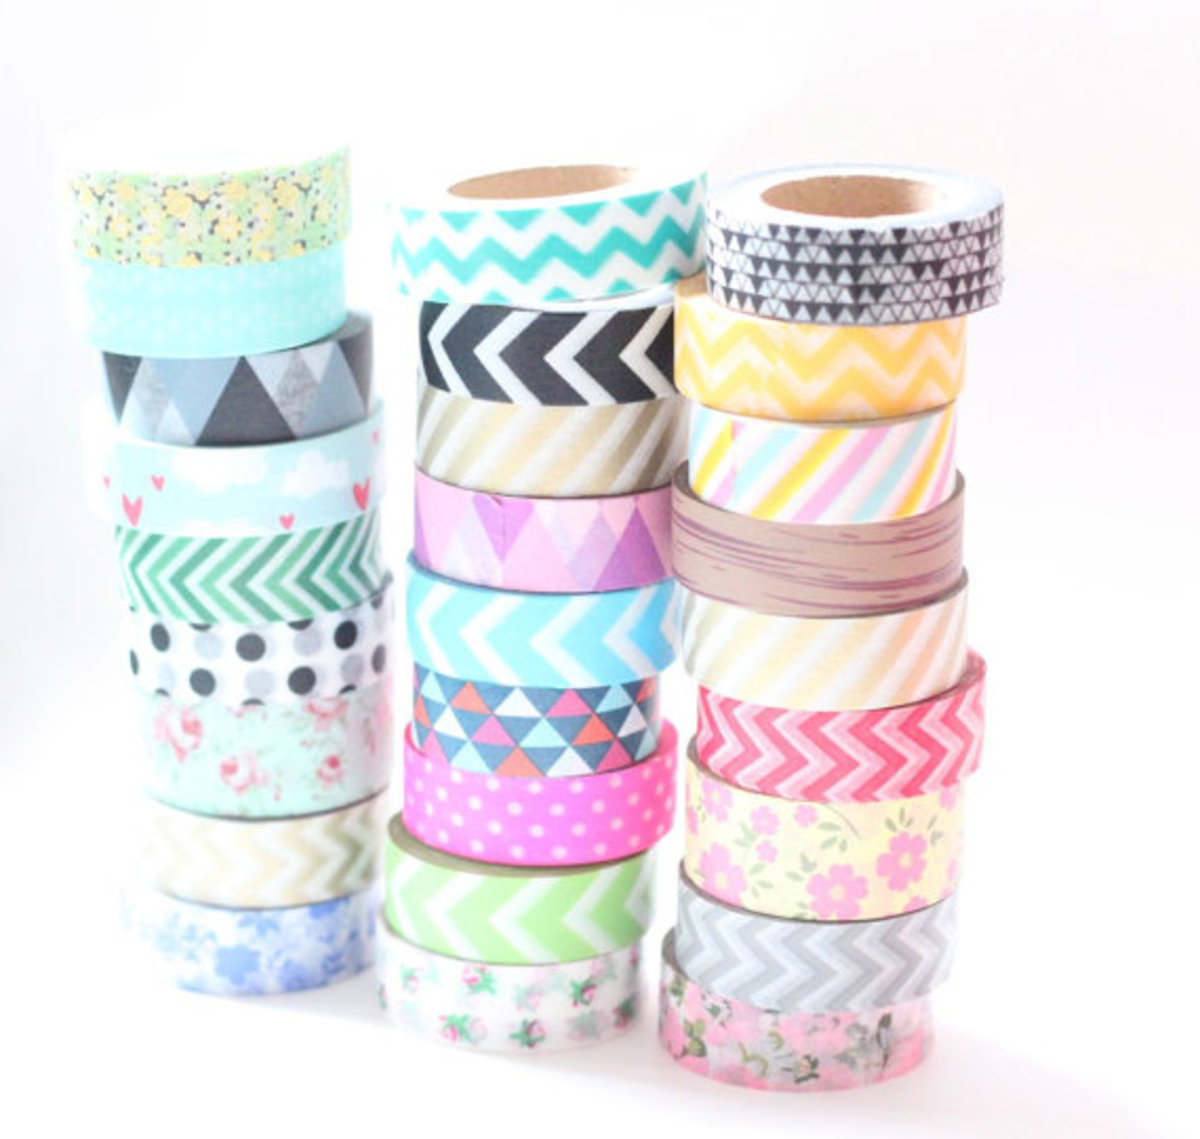 Washi tape is an everyday decorating idea.